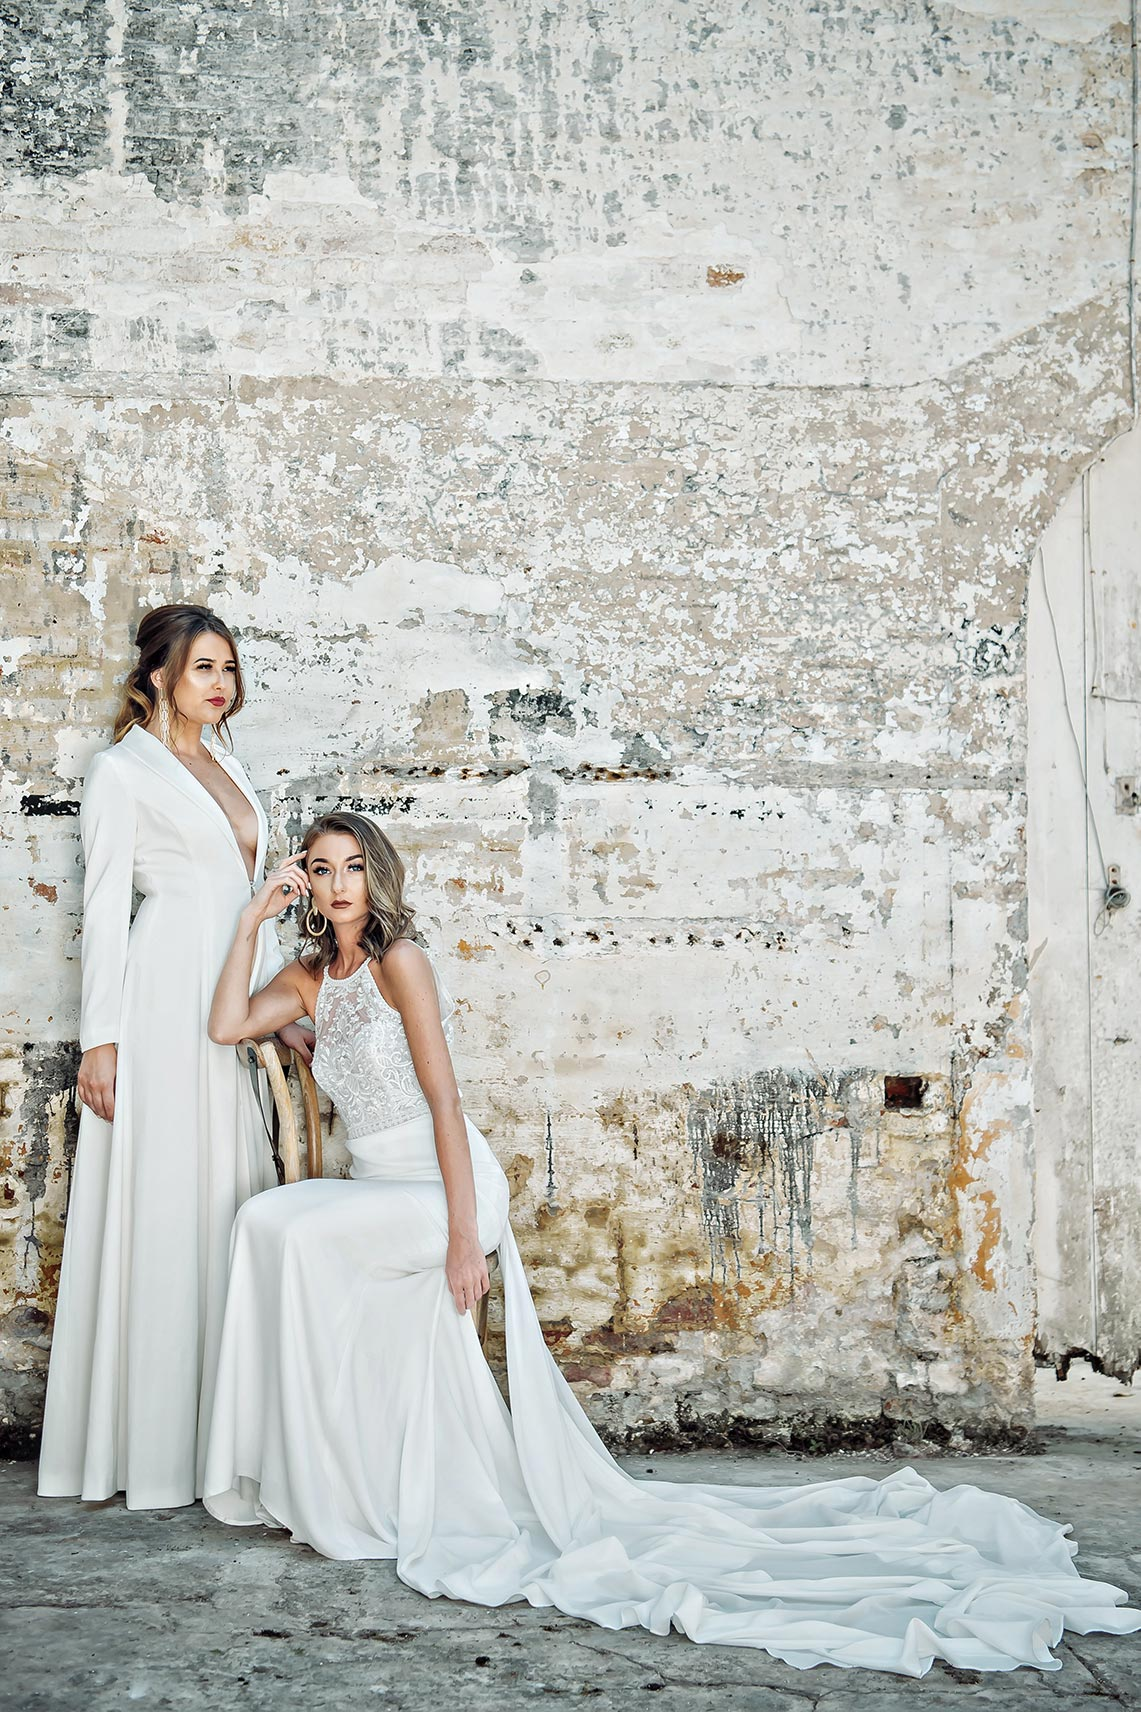 Bridal gowns by Watters and Aire Barcelona